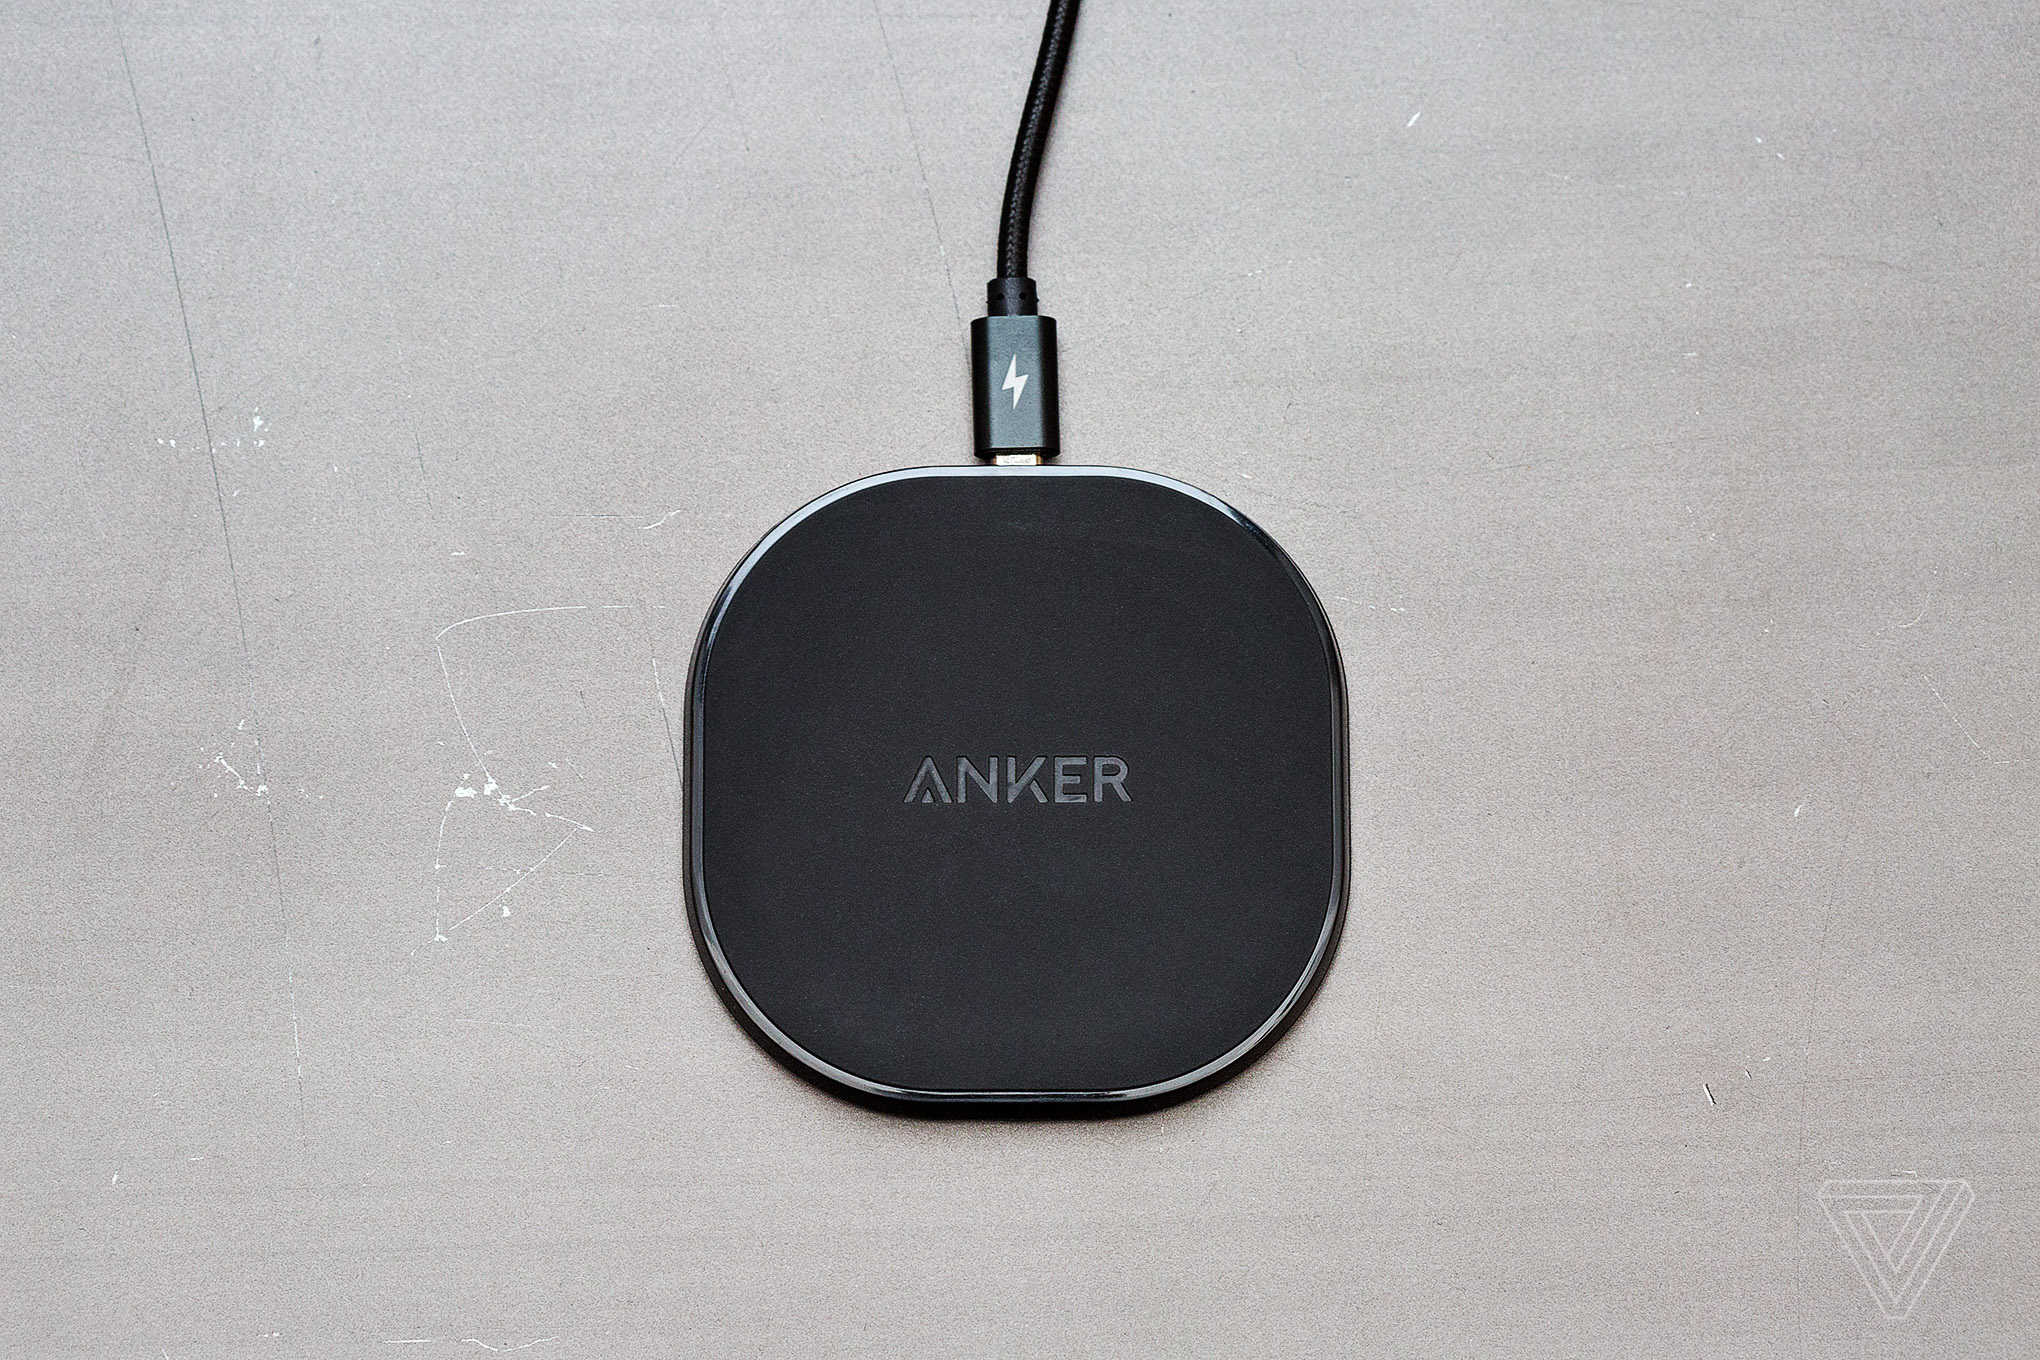 Anker 15W Wireless Charger